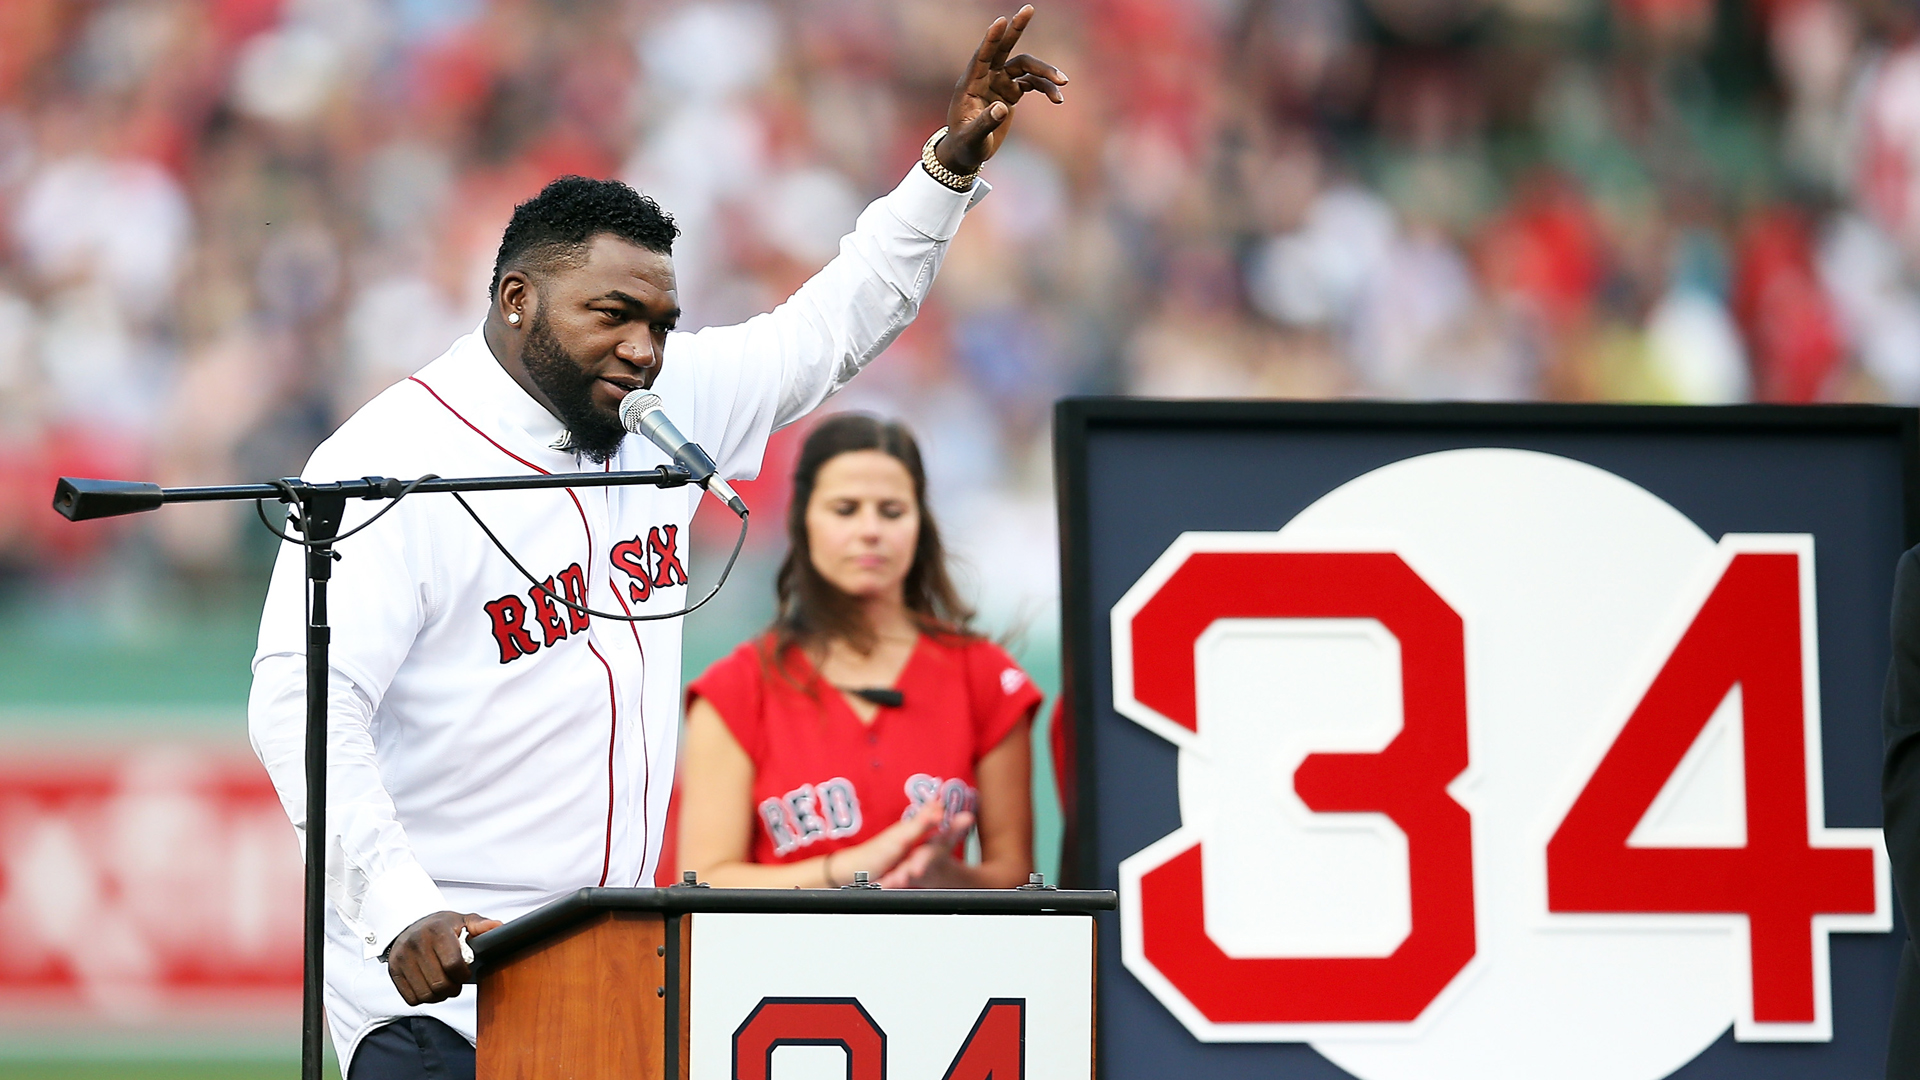 Former Boston Red Sox player David Ortiz #34 speaks during his jersey retirement ceremony before a game against the Los Angeles Angels of Anaheim at Fenway Park on June 23, 2017 in Boston, Massachusetts. (Credit: Adam Glanzman/Getty Images)